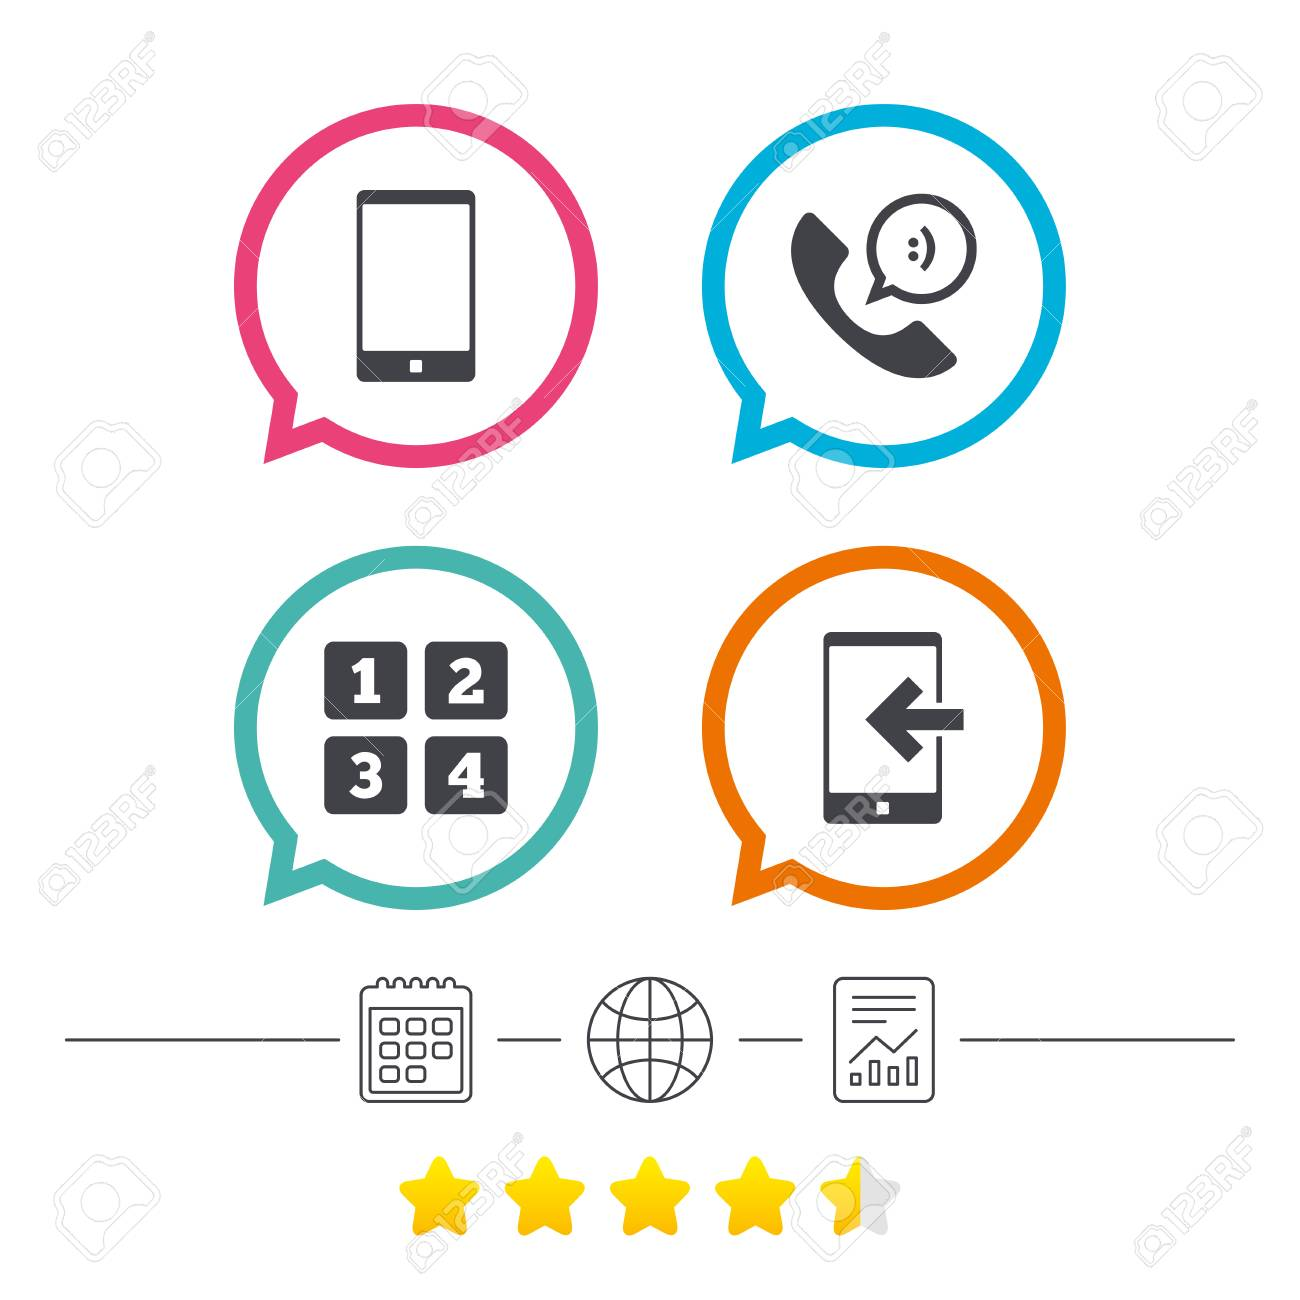 Star symbol keyboard choice image symbol and sign ideas phone icons smartphone incoming call sign call center support phone icons smartphone incoming call sign call biocorpaavc